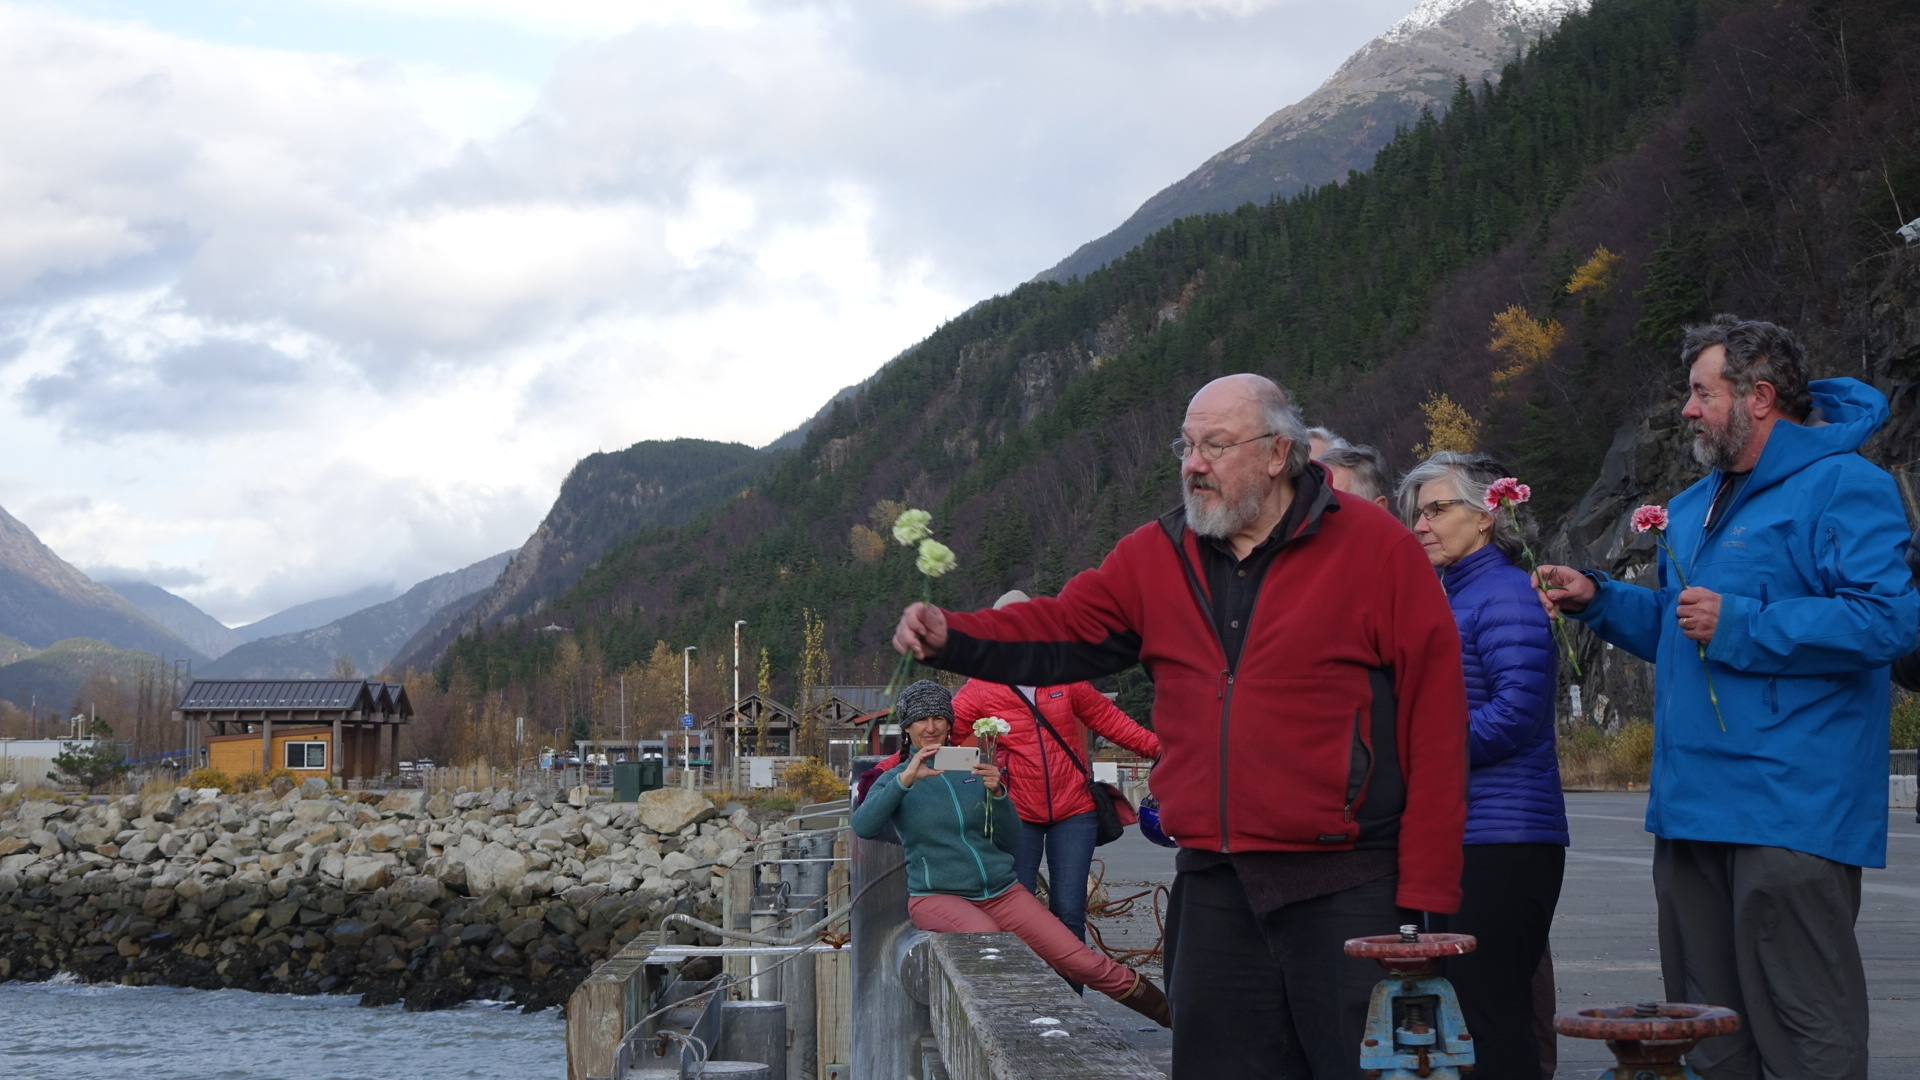 The centennial anniversary of the disaster was marked earlier this month in Skagway. (Claudiane Samson/Radio-Canada)